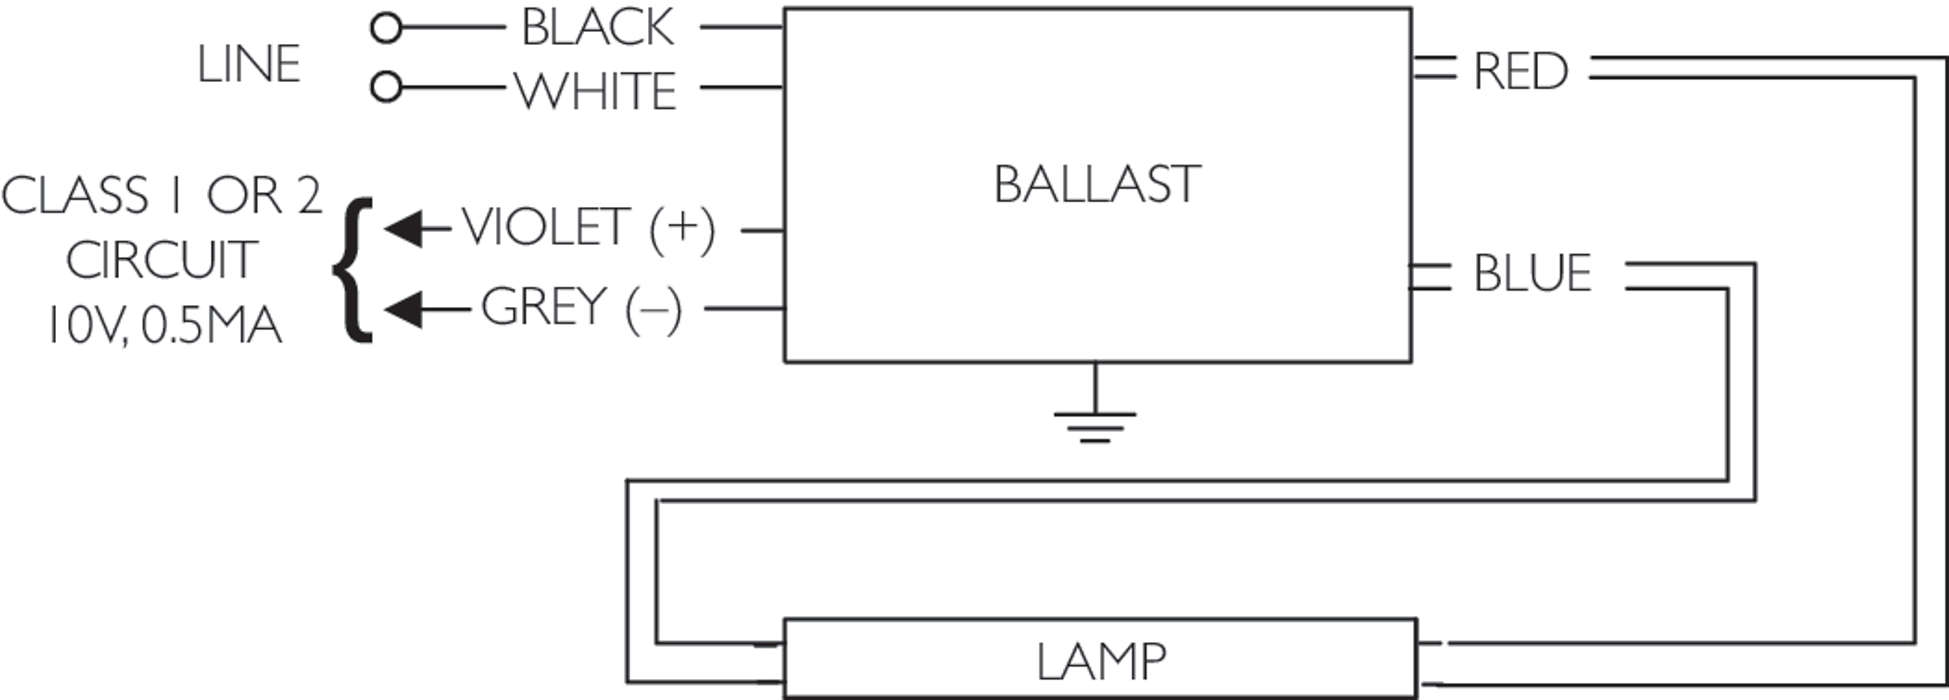 mark 7 0 10v dimming ballasts wiring diagram wiring diagram mark 7 0 10v ele dimming ballast 1 f80t5ho 120 277v advance mark 7 0 10v wiring diagram